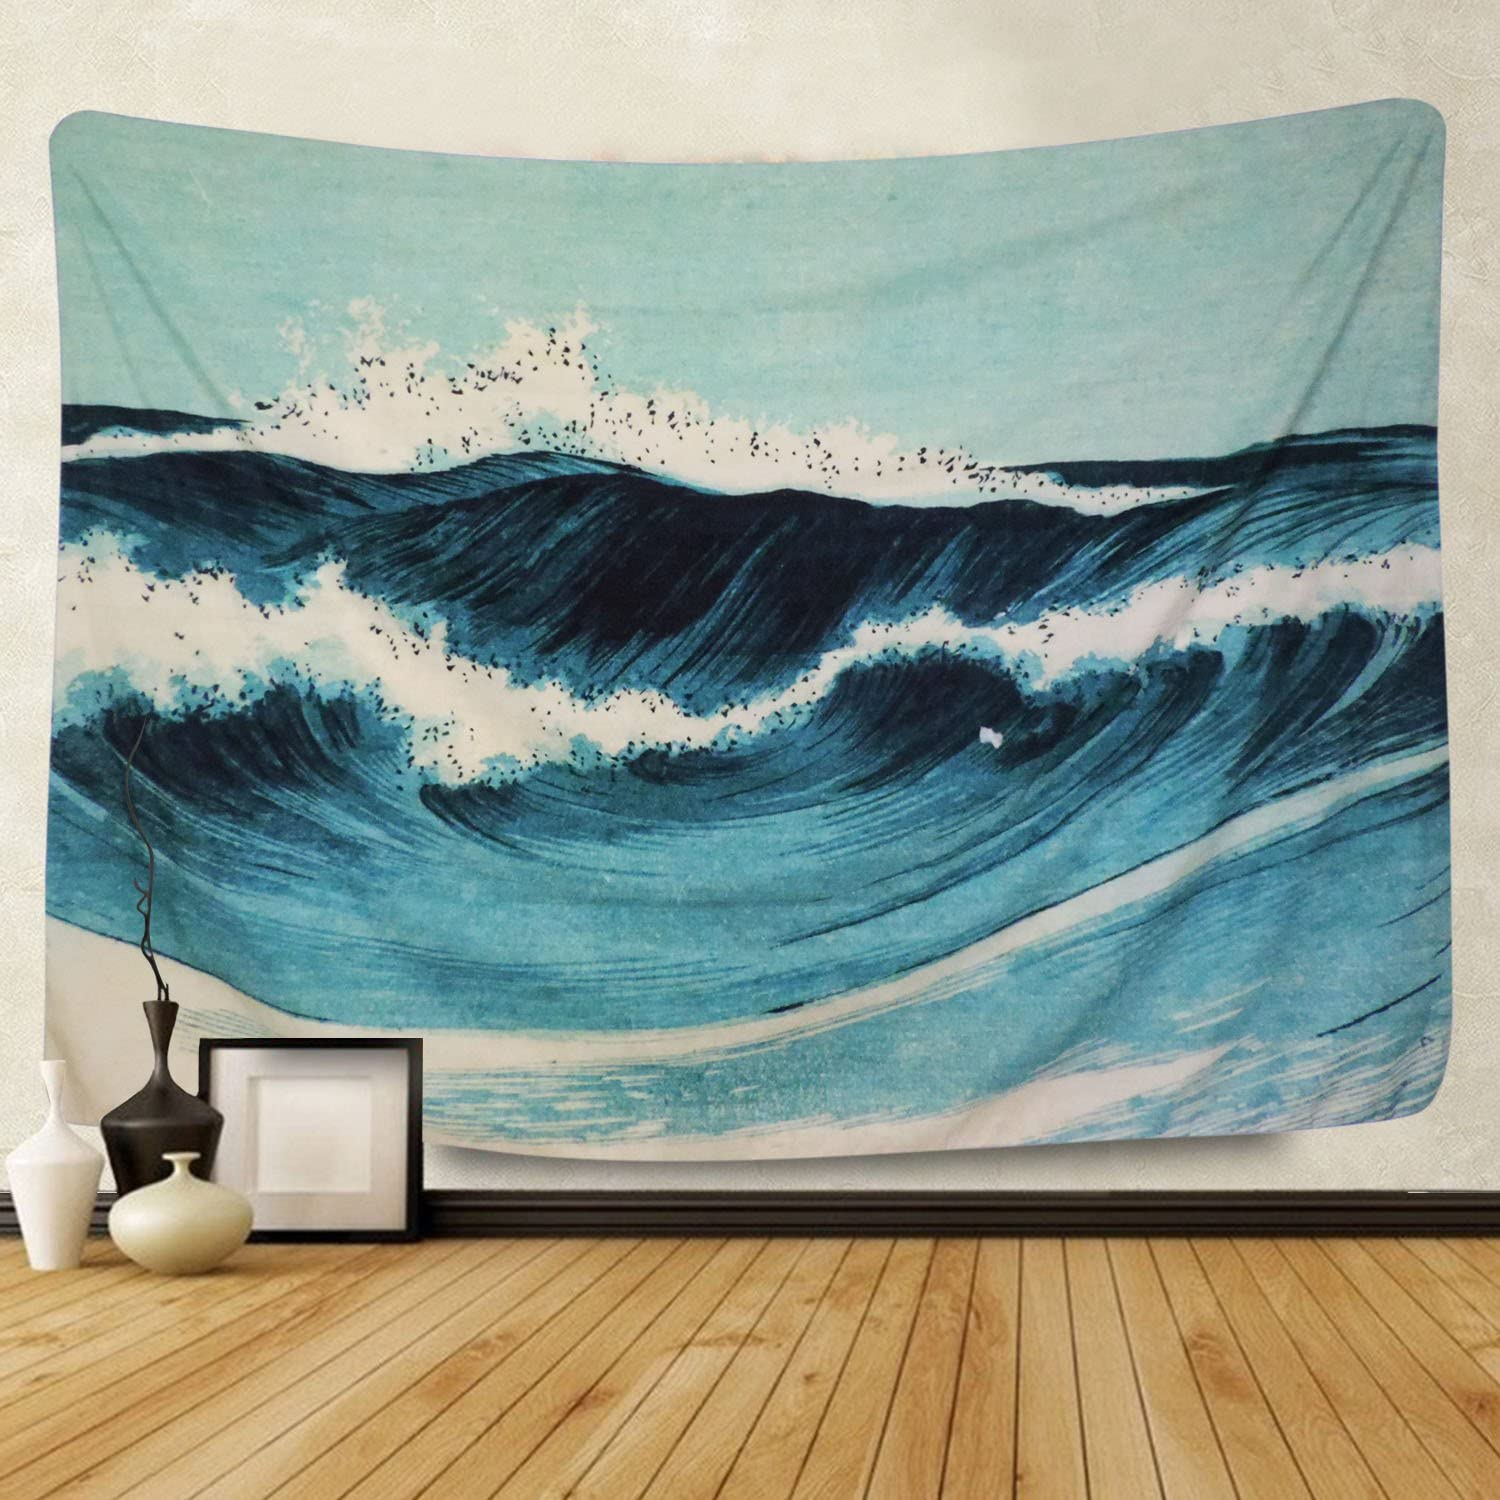 Martine Mall Tapestry Wall Tapestry Wall Hanging Tapestries Ocean Tapestry Wall Art Ocean Wave Decor Blue Indian Tapestry Wall Blanket Wall Decor Wall Art Home Decor Wall Hanging Art 59 X 51 Inches